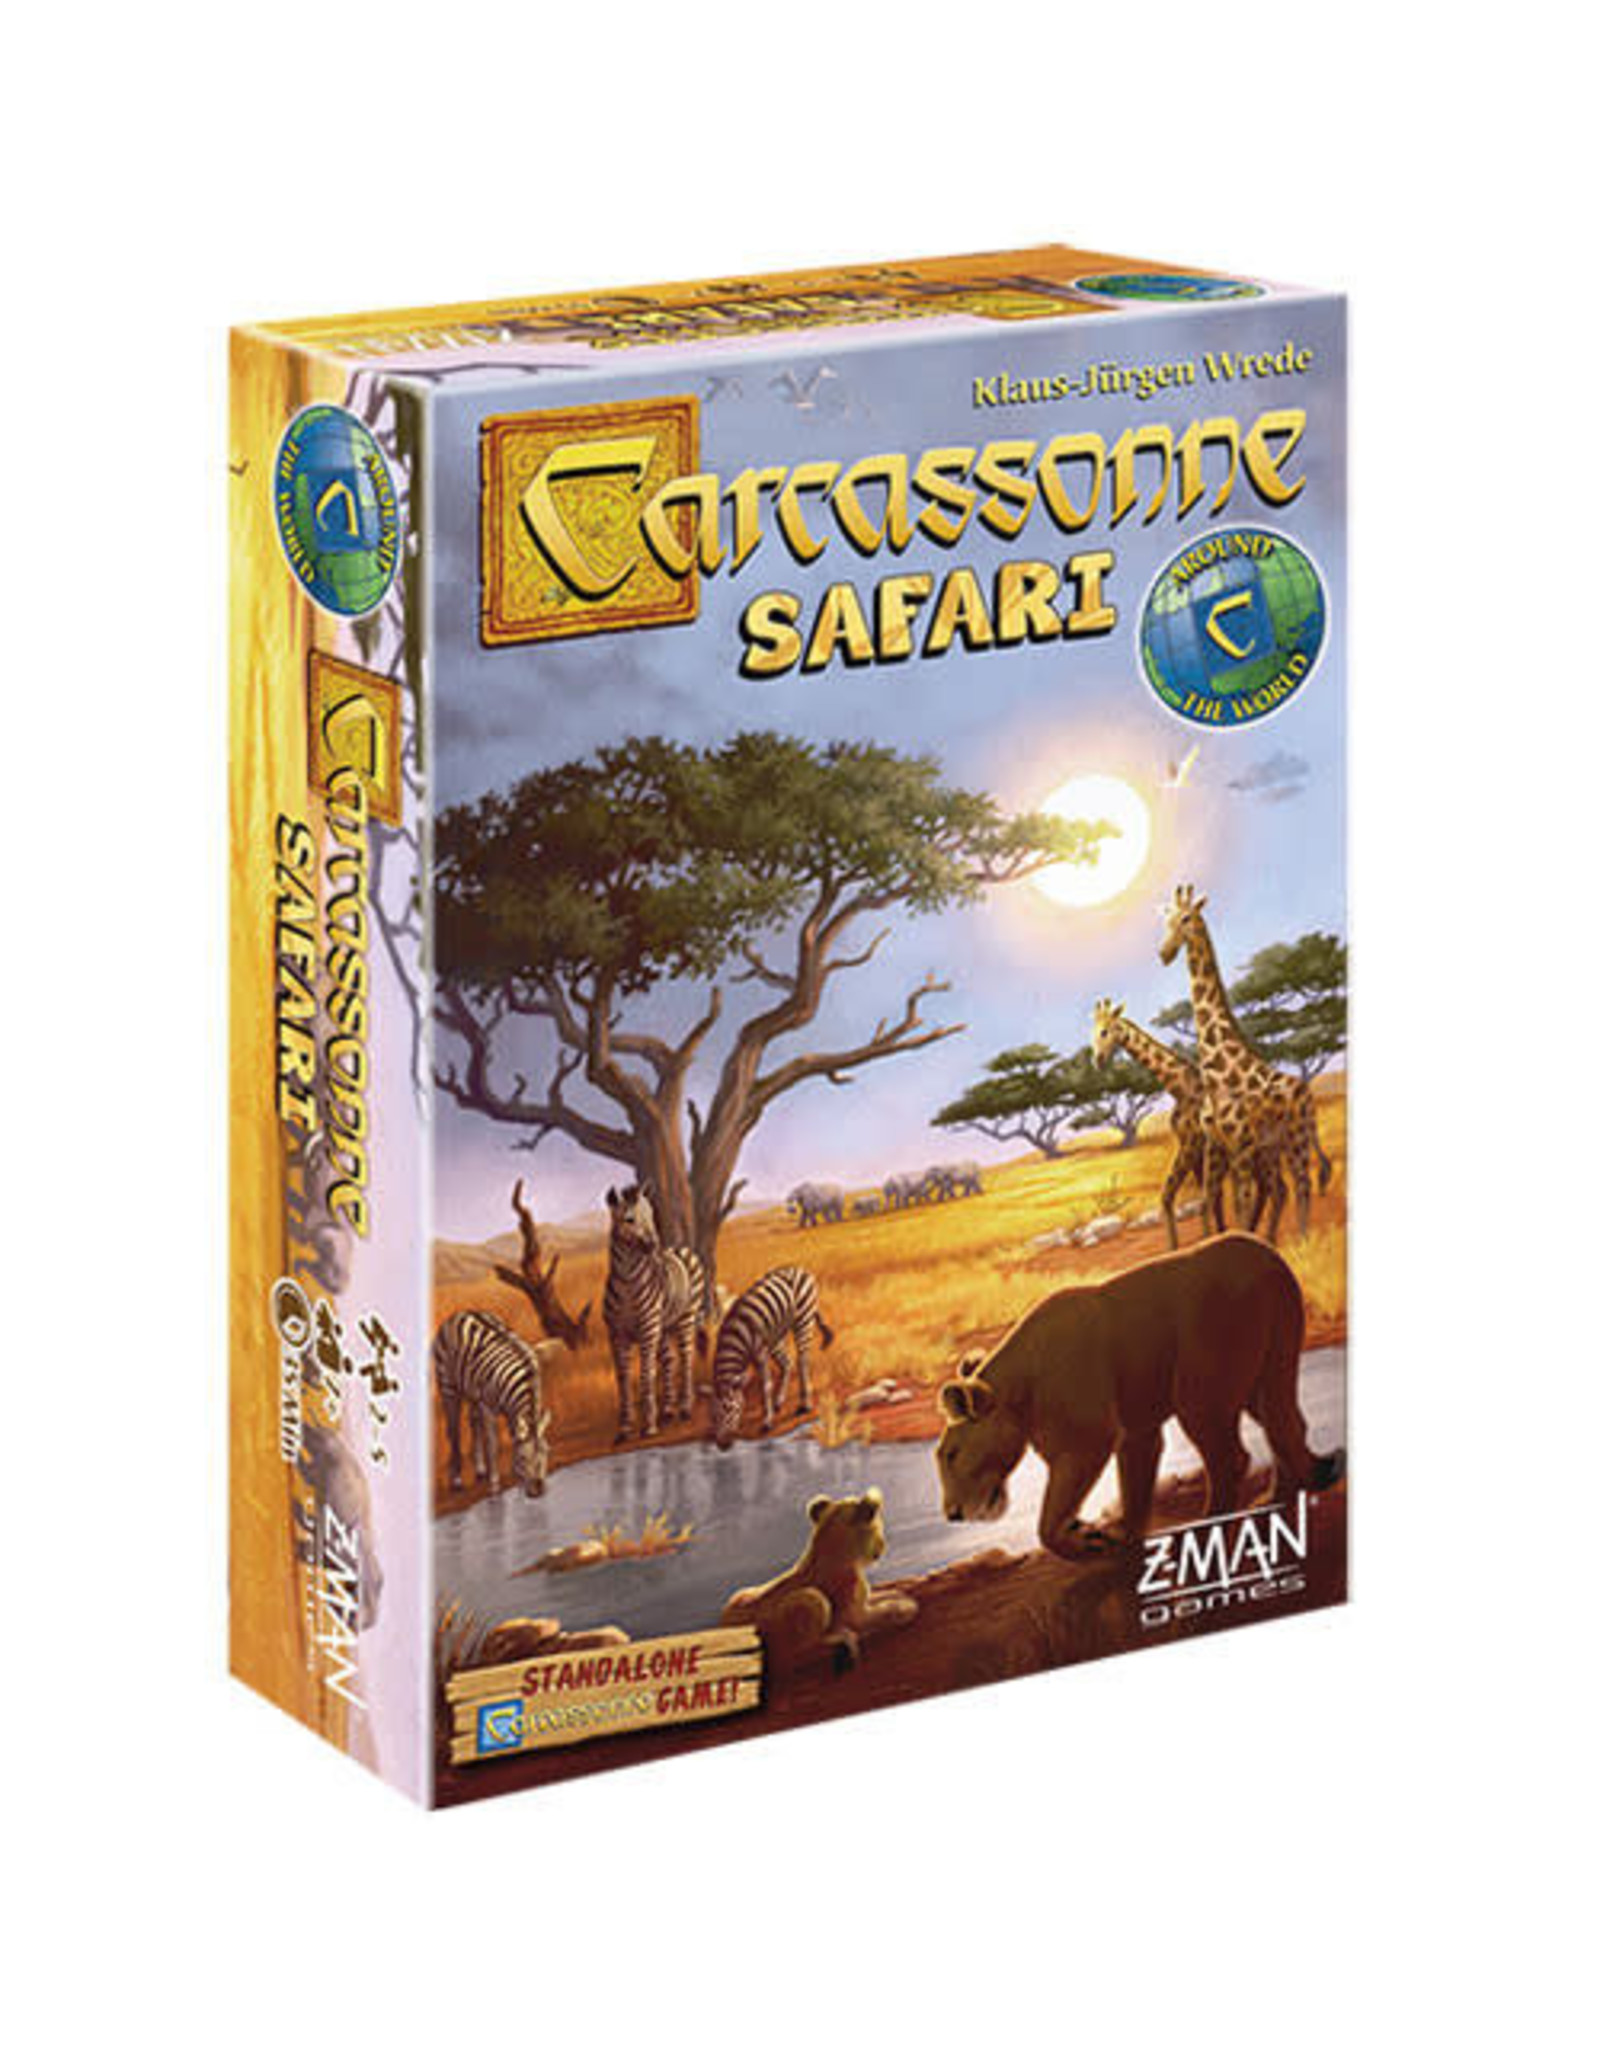 Carcassonne Safari Board Game (Standalone)